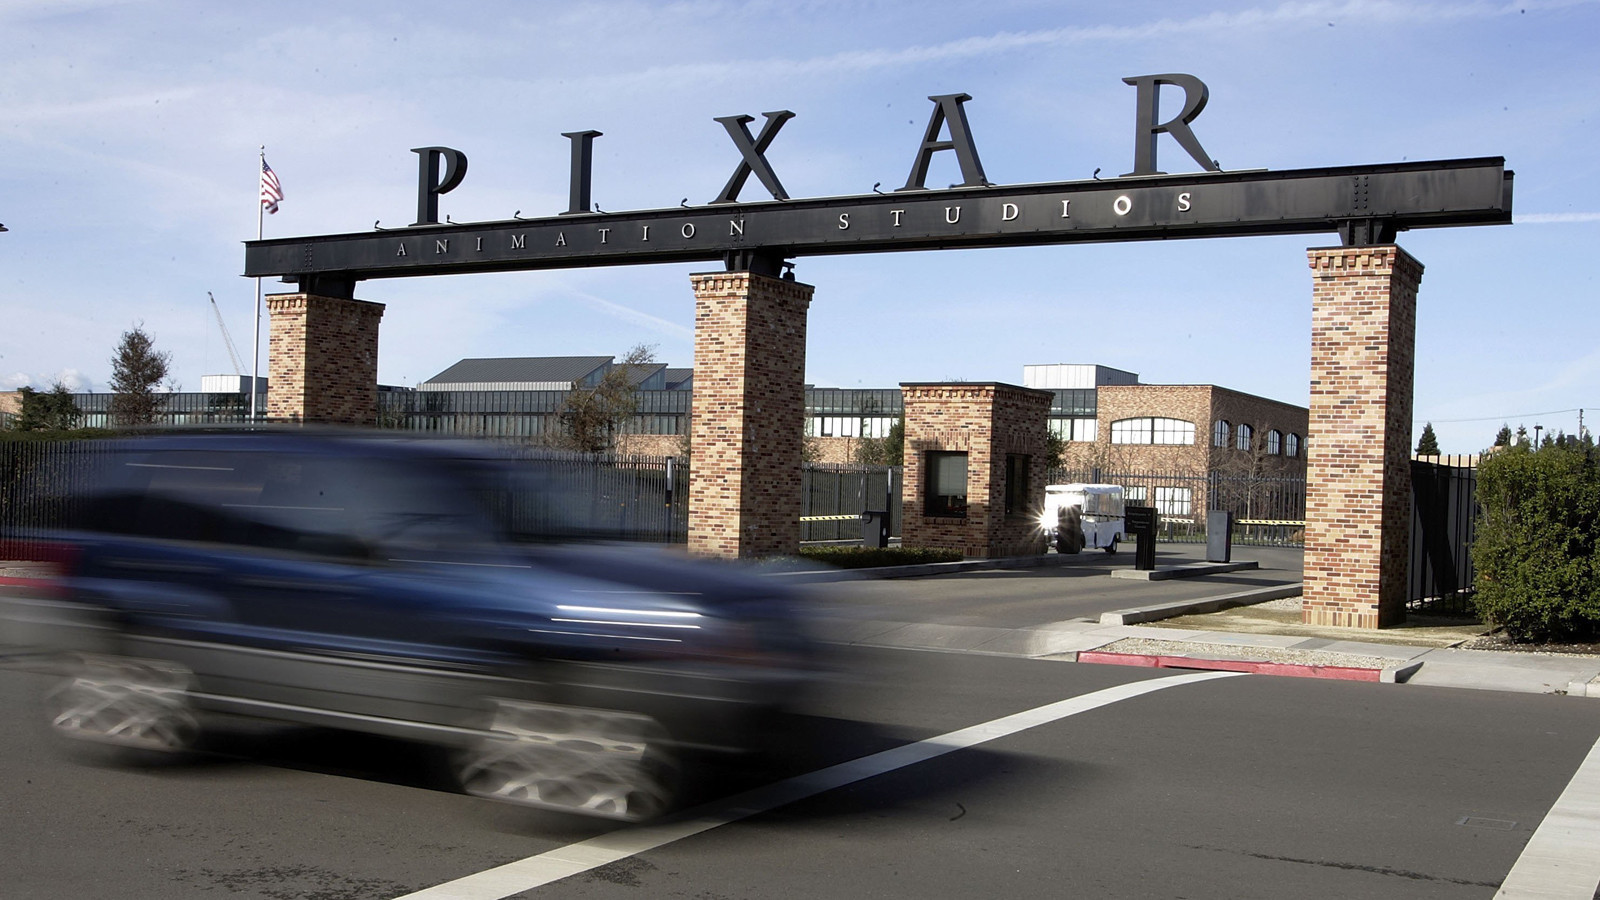 How Pixar comes up with so many good ideas